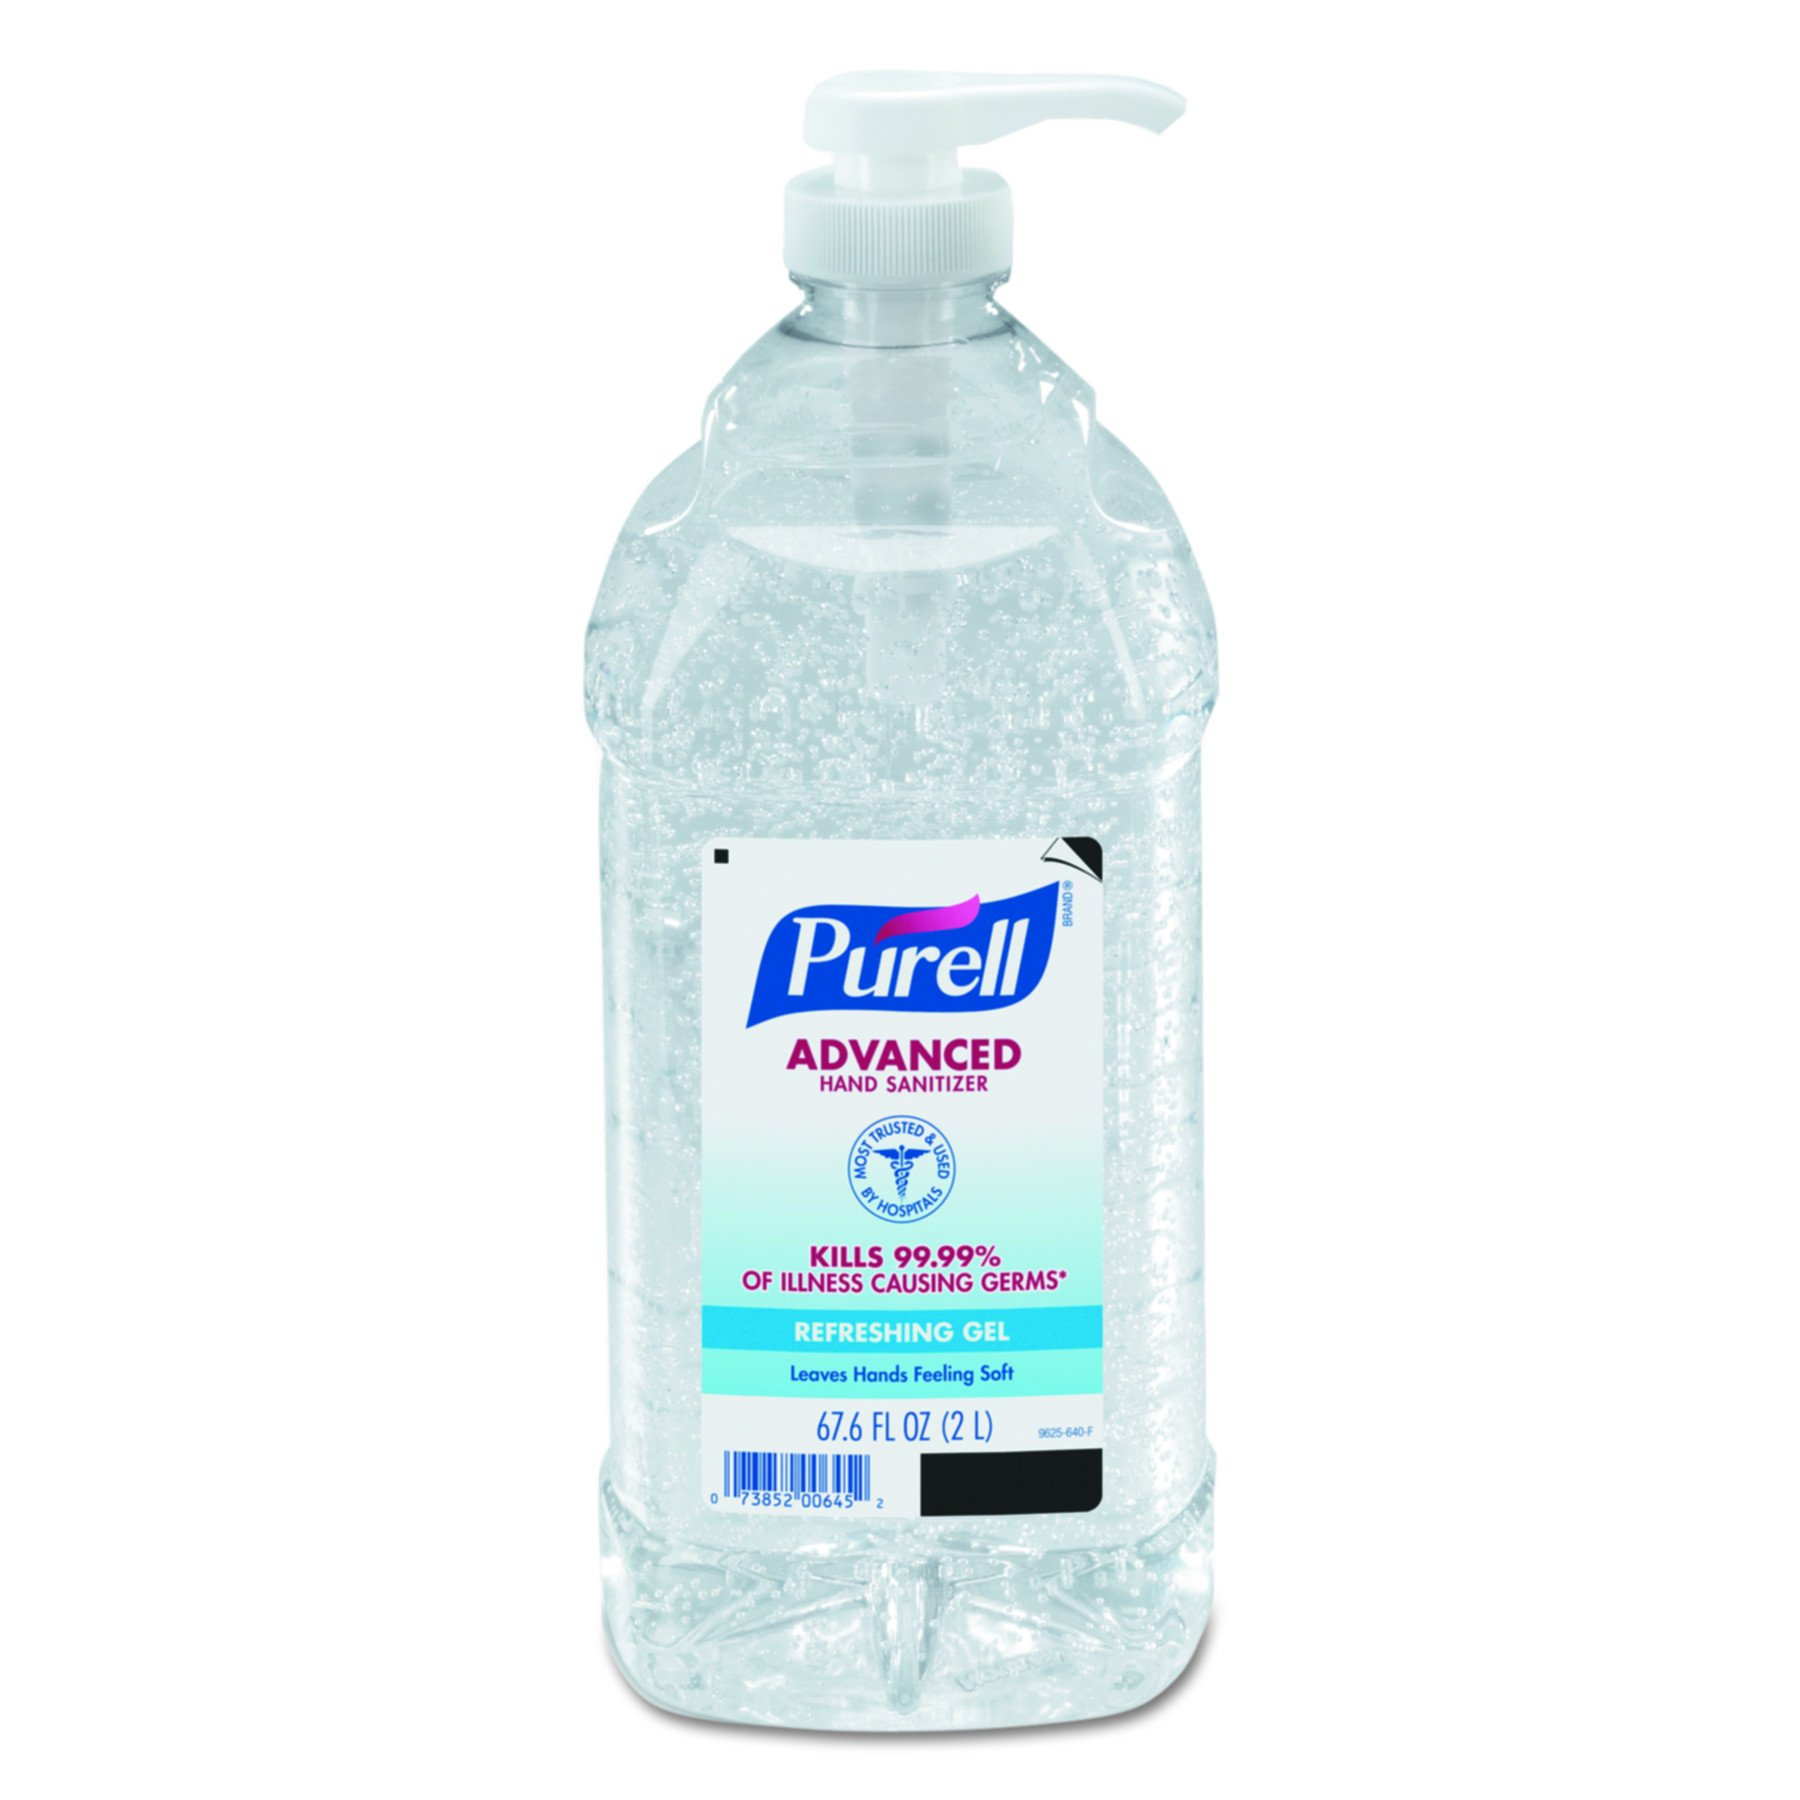 PURELL Advanced Hand Sanitizer - Hand Sanitizer Gel, 2L Pump Bottle (Case of 4) - 9625-04